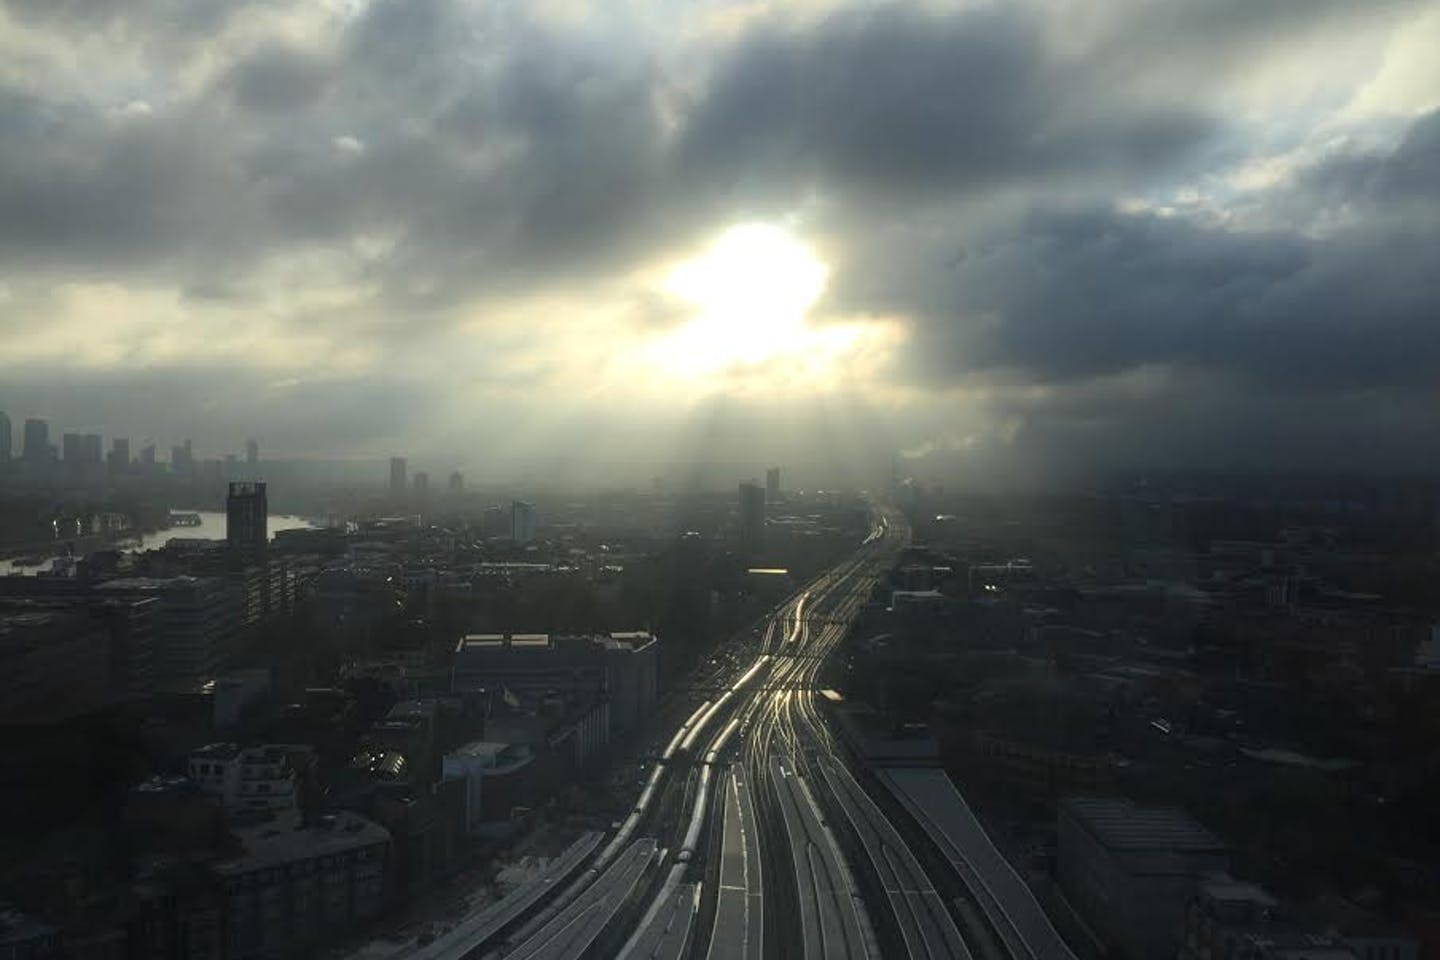 The view from Dan Wells' office at The Shard, Central London.